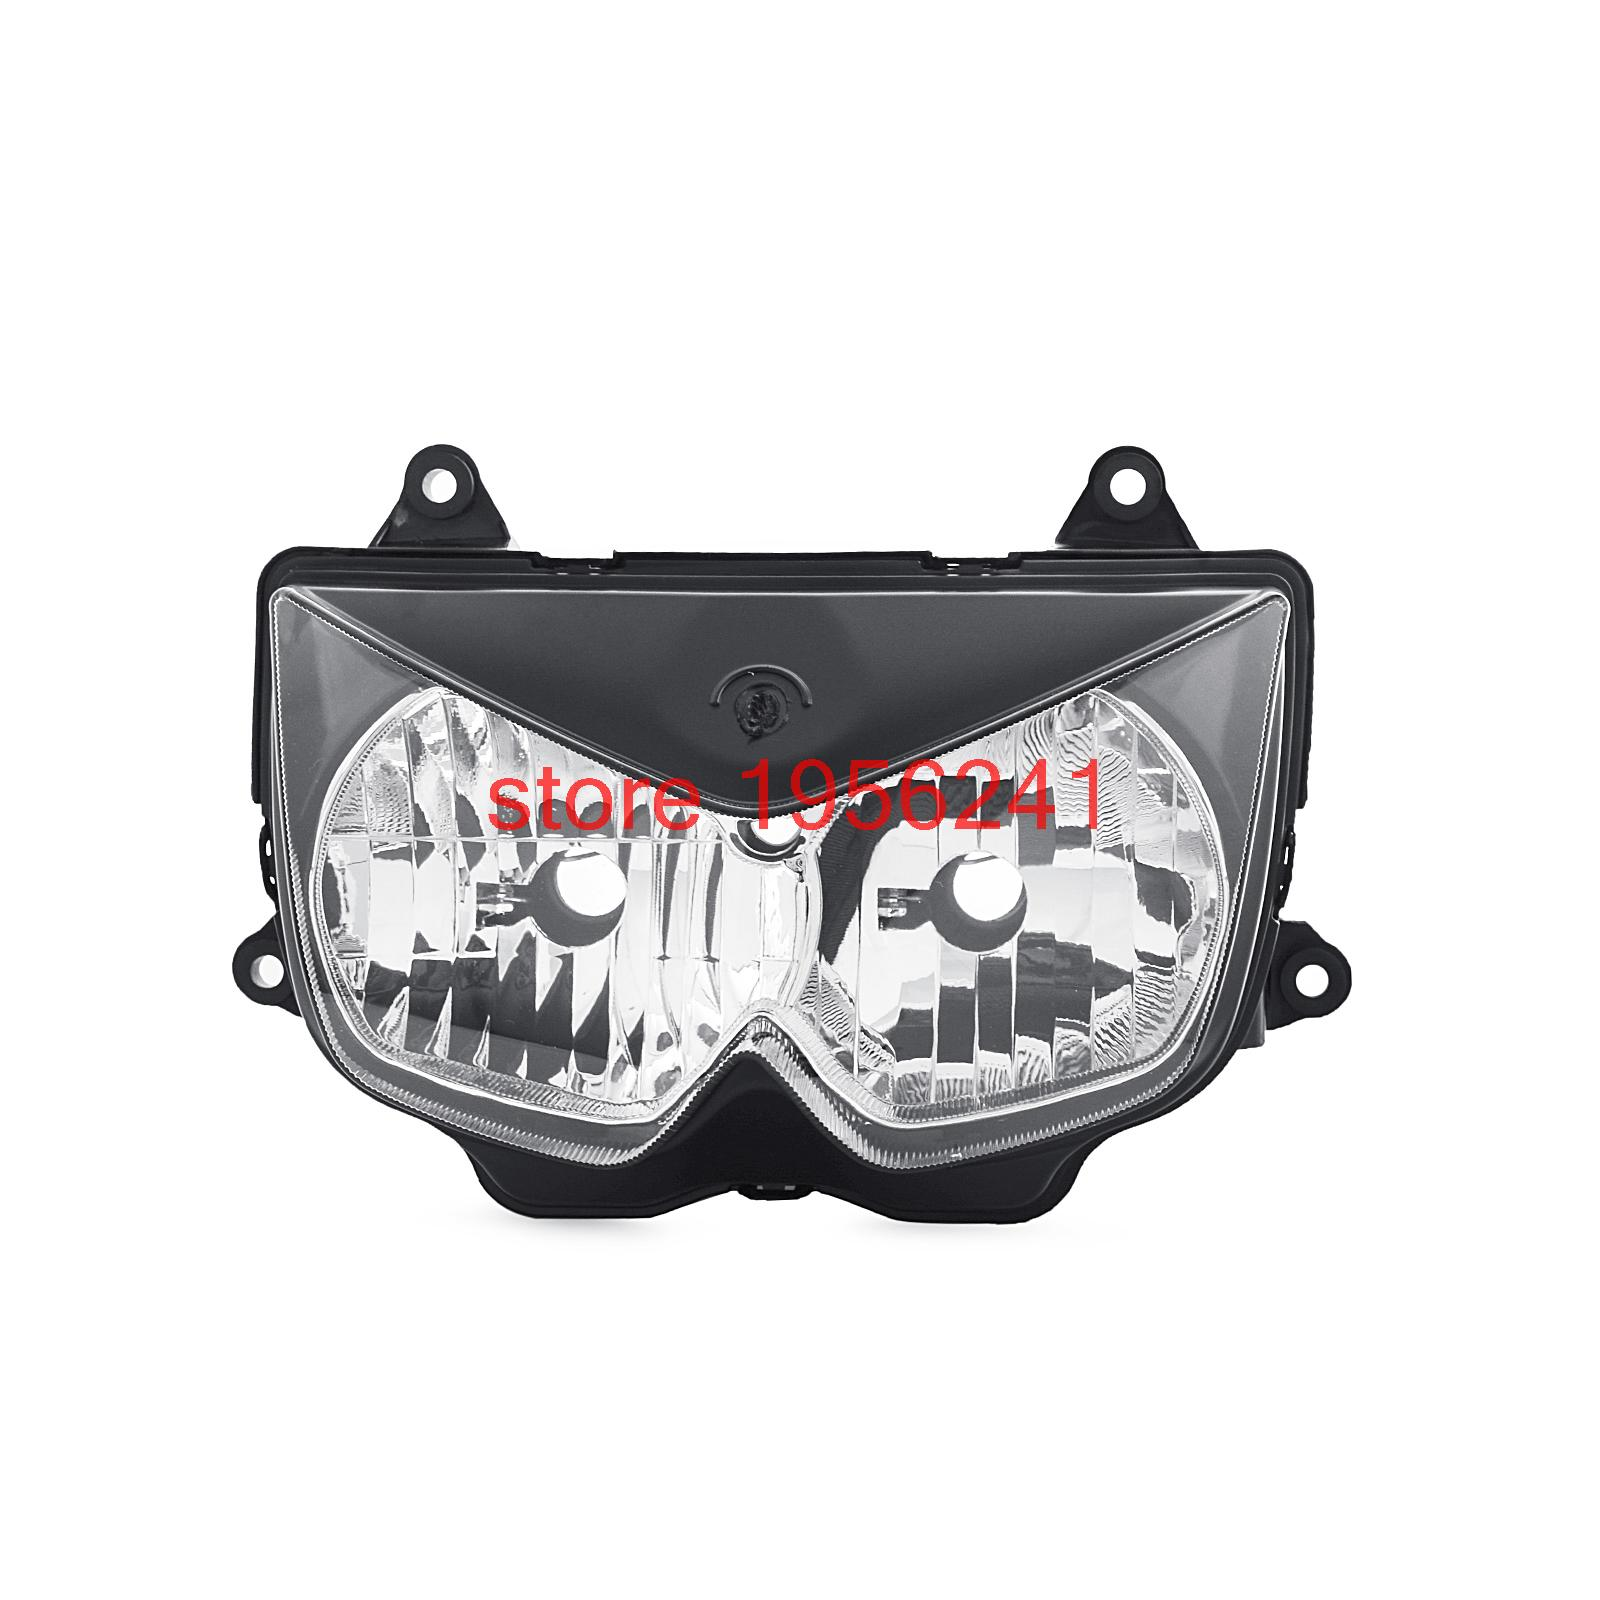 Motorcycle Clear Lens Headlight Head Light Headlamp Assembly For Kawasaki Z750 ZR750 2004 2005 2006 Z 750 750R